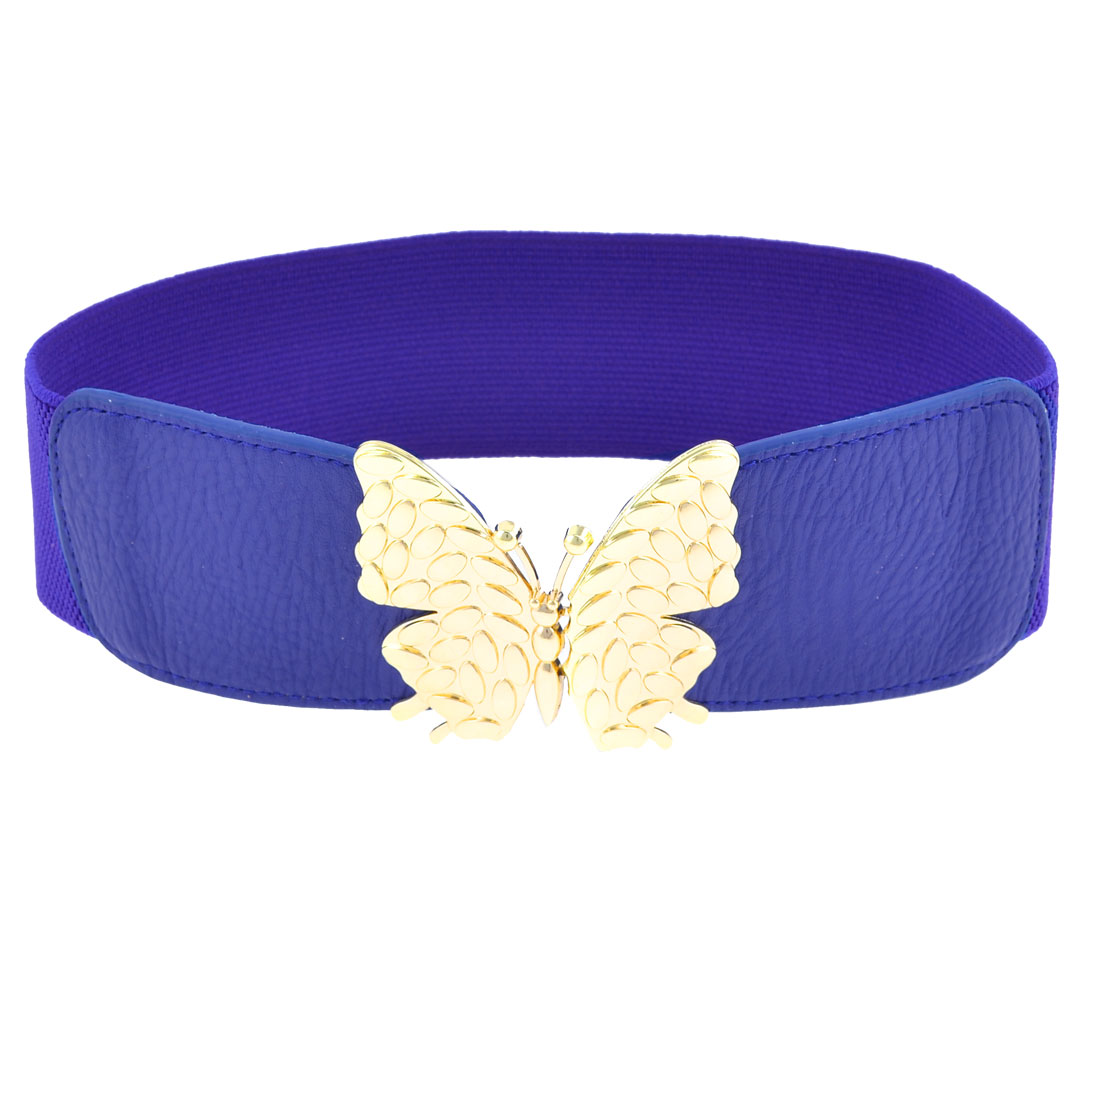 Blue Faux Leather Front Butterfly Interlock Buckle Stretchy Waist Belt for Lady